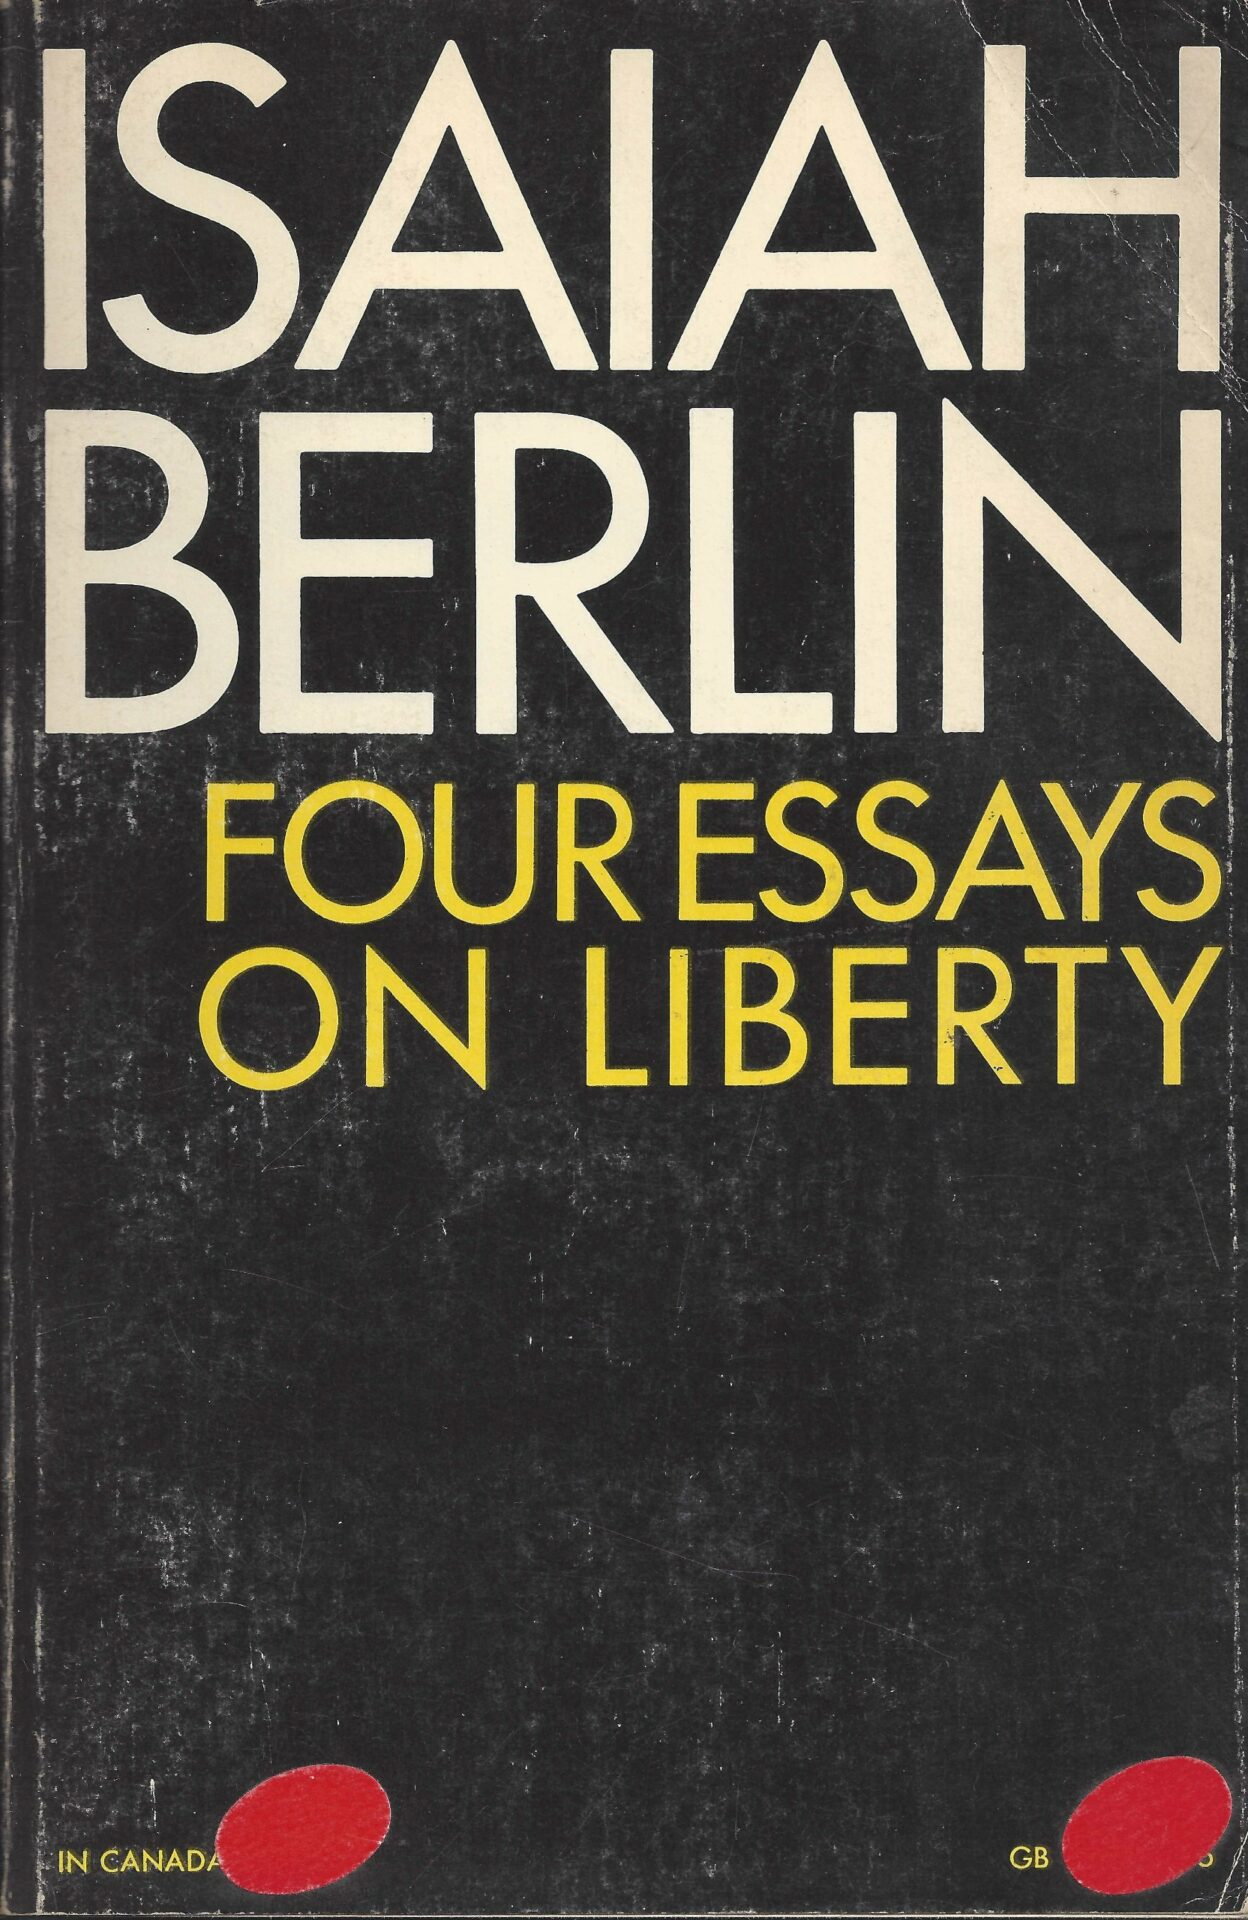 an analysis of berlins concept of freedom as presented in two concepts of liberty 1 berlin: two concepts of liberty isaiah berlin (1909-97) born in riga, latvia (then part of the russian empire), experienced the beginnings of the russian revolution withbeginnings of the russian revolution with.